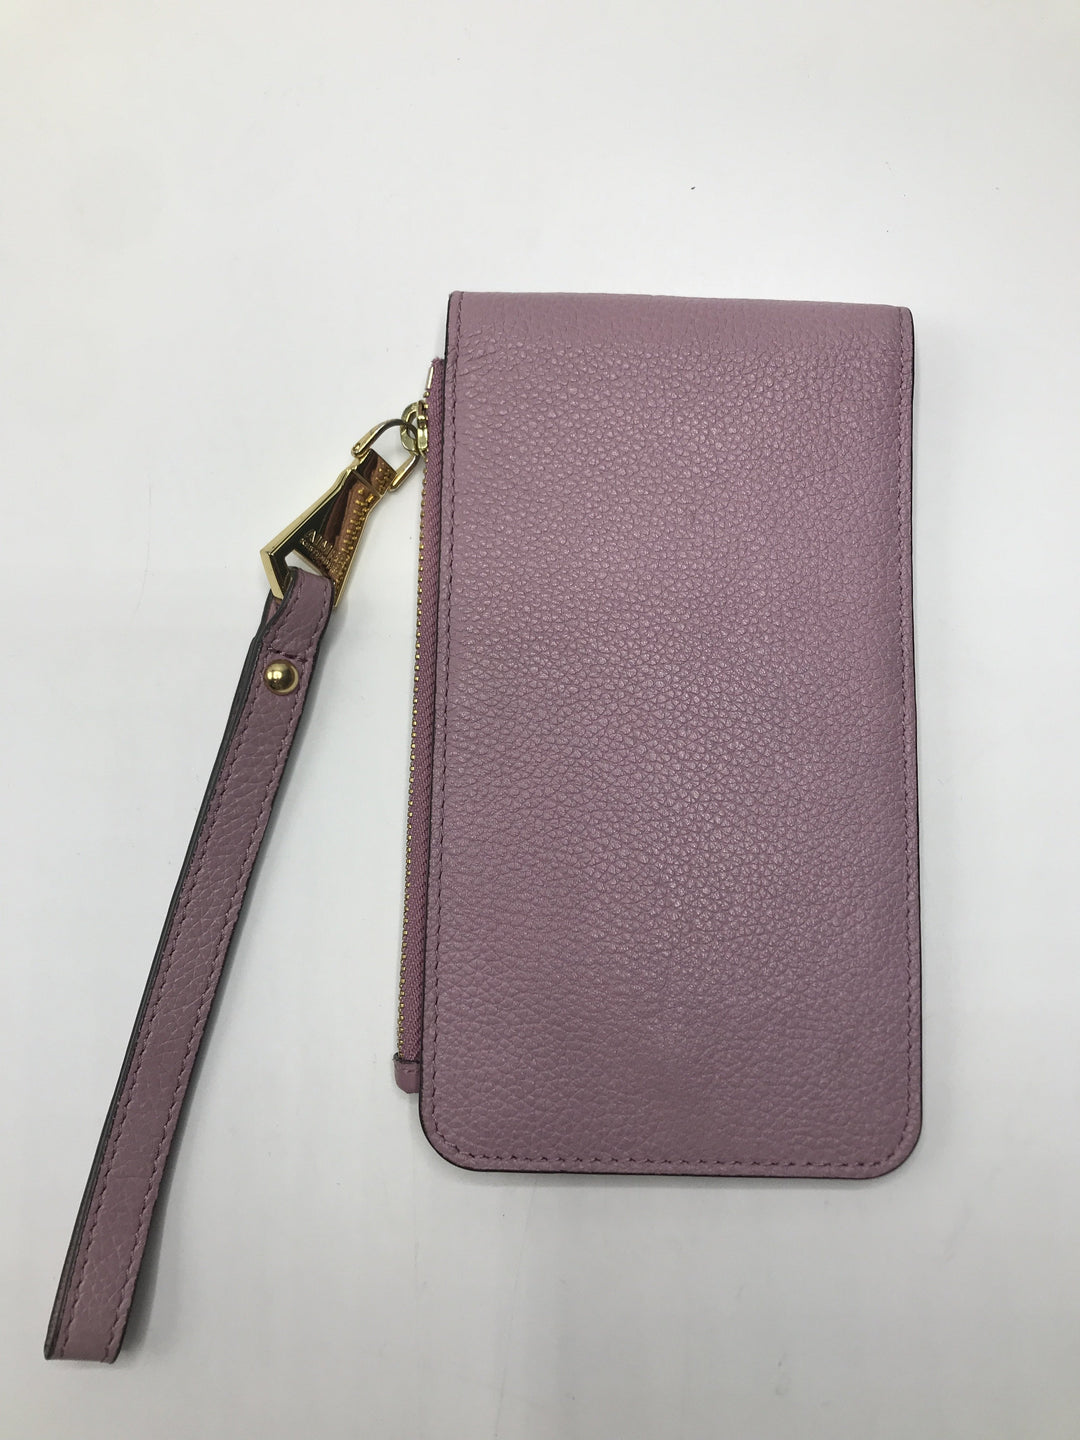 Primary Photo - brand: aimee kestenberg , style: wristlet , color: pink , sku: 126-2092-182383